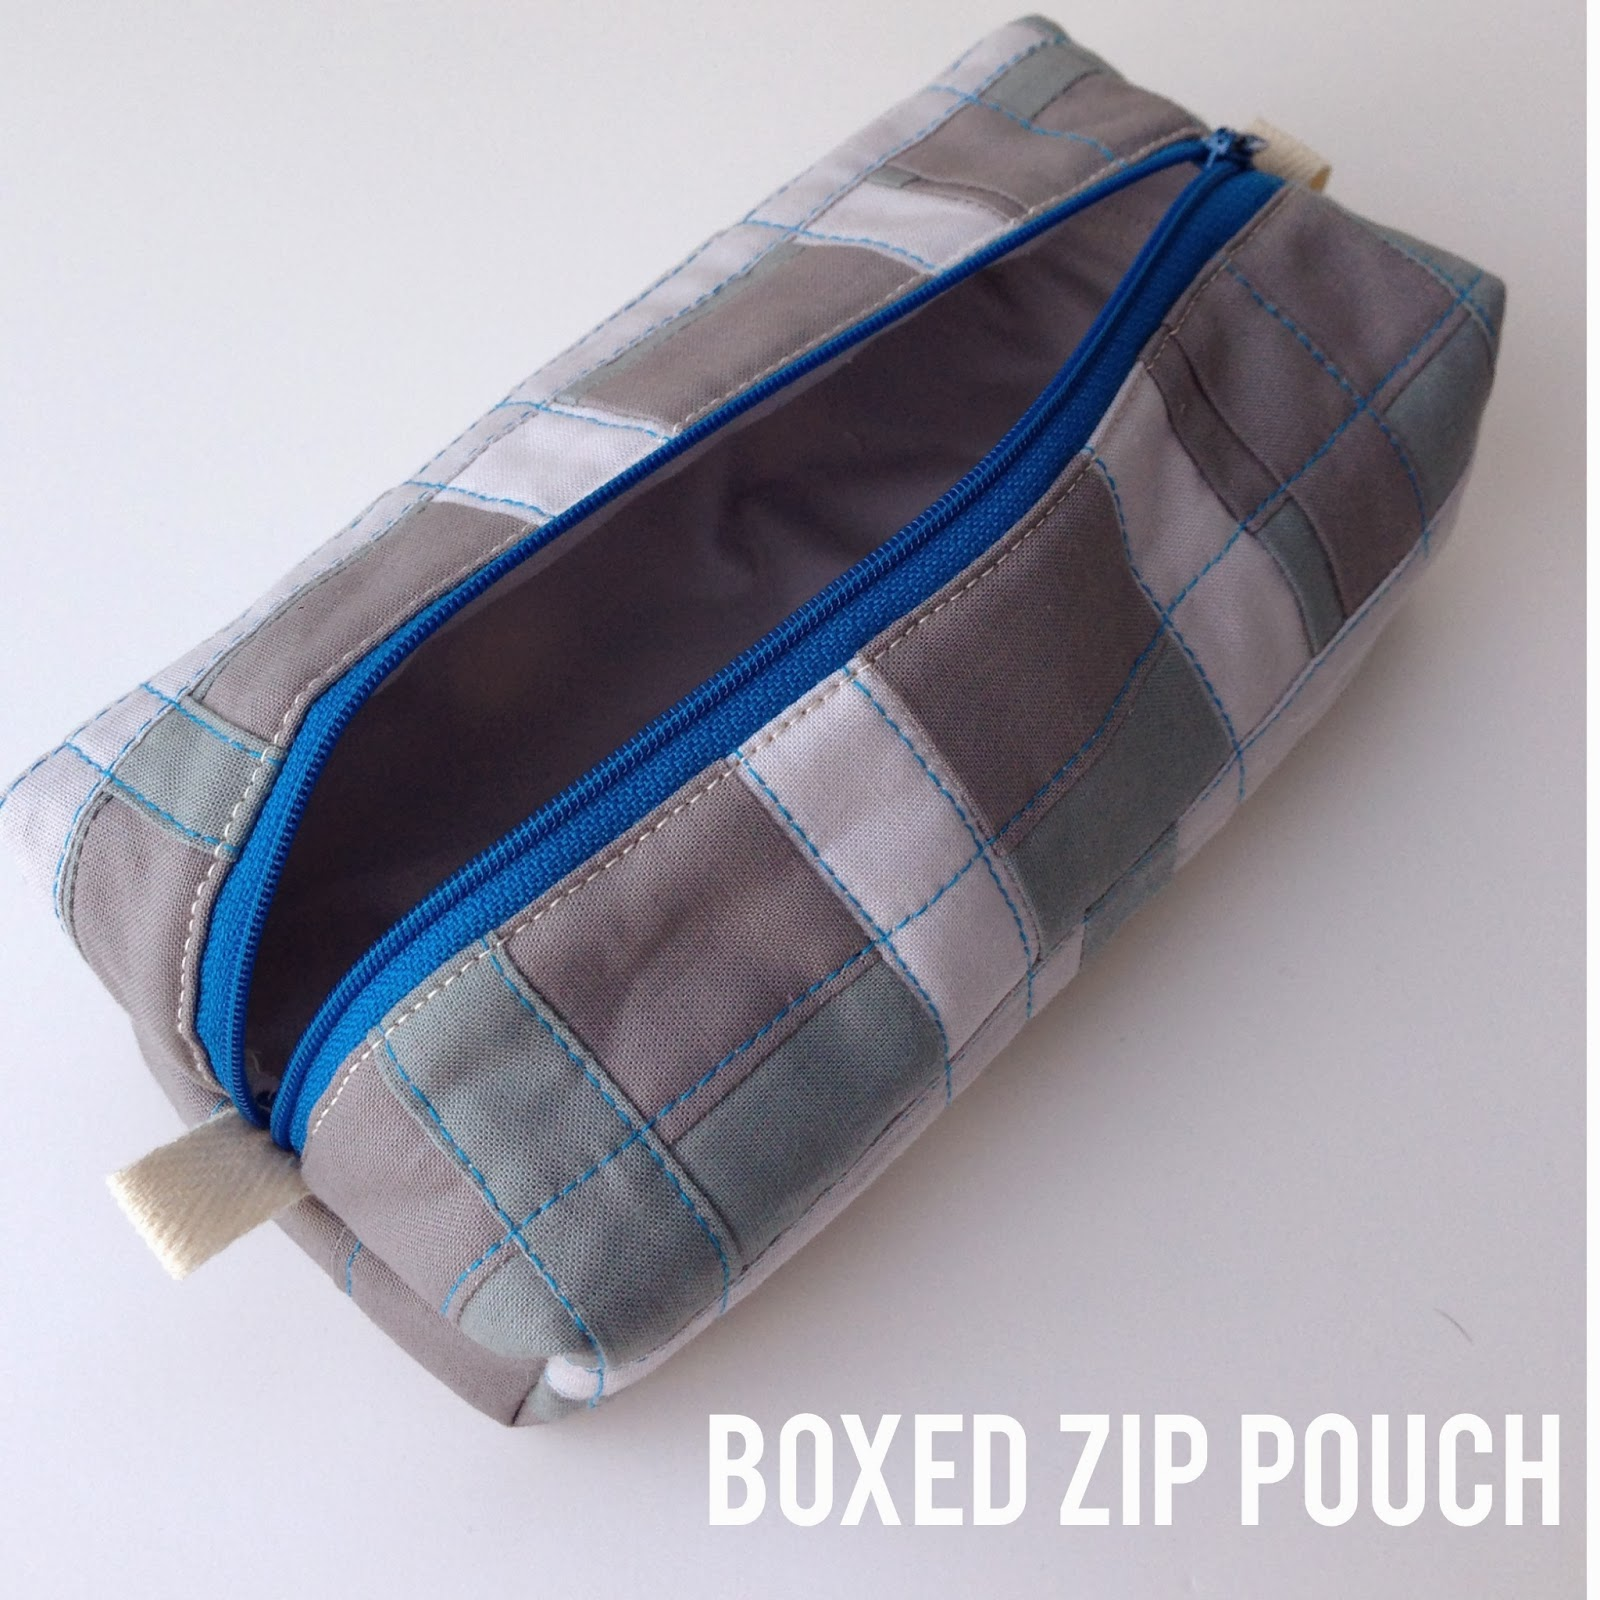 Boxed Zip Pouch Tutorial by Nizhoni Workshop